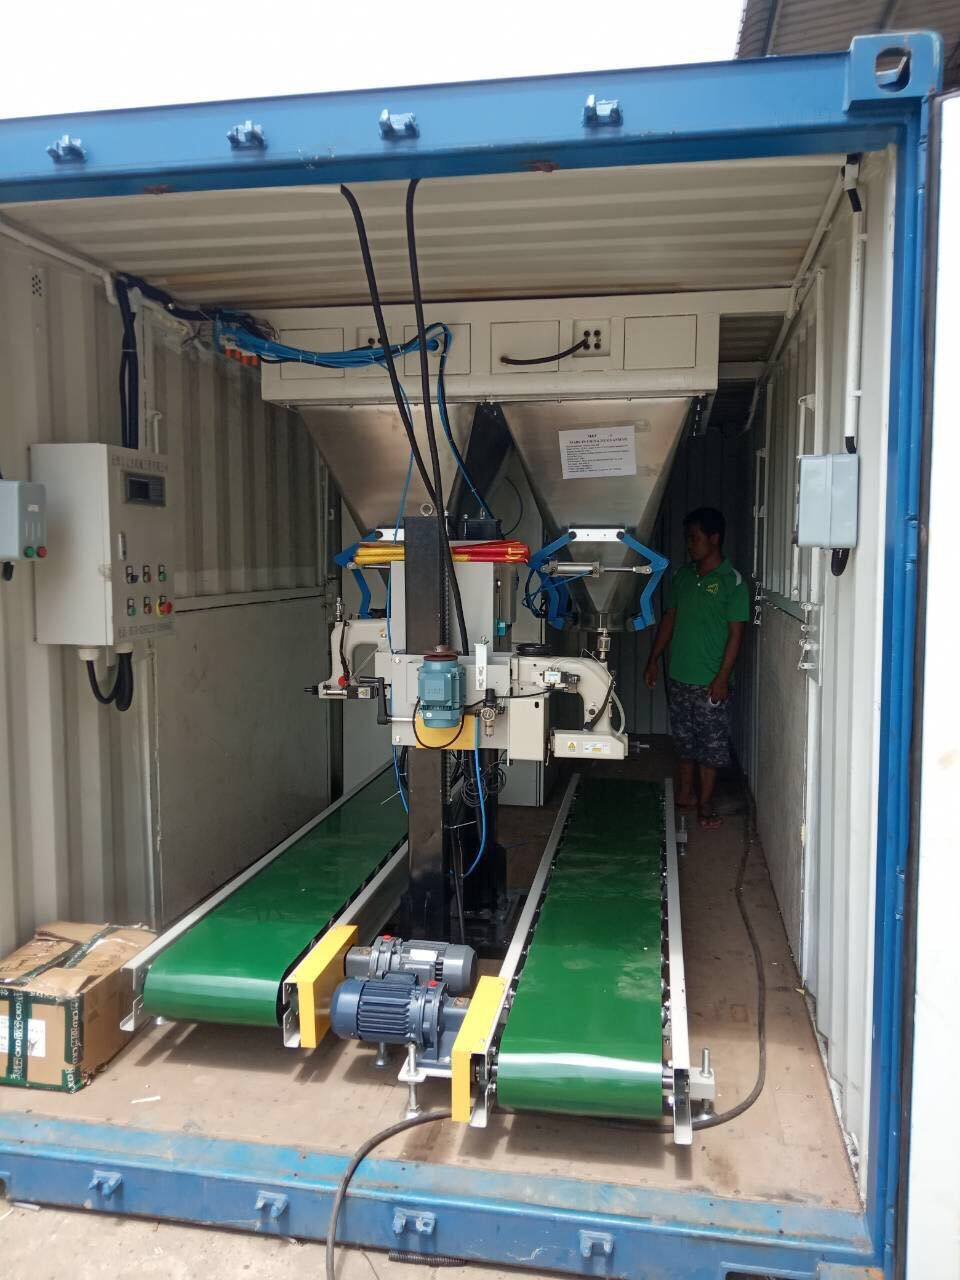 MOBILE SAND AND GRAVELS BAGGING MACHINES containerized bagging system Mobile Bagging Unit MOBILE BAGGING MACHINES for Grains, pulses, iodised salts, sugar Containerised bagging system